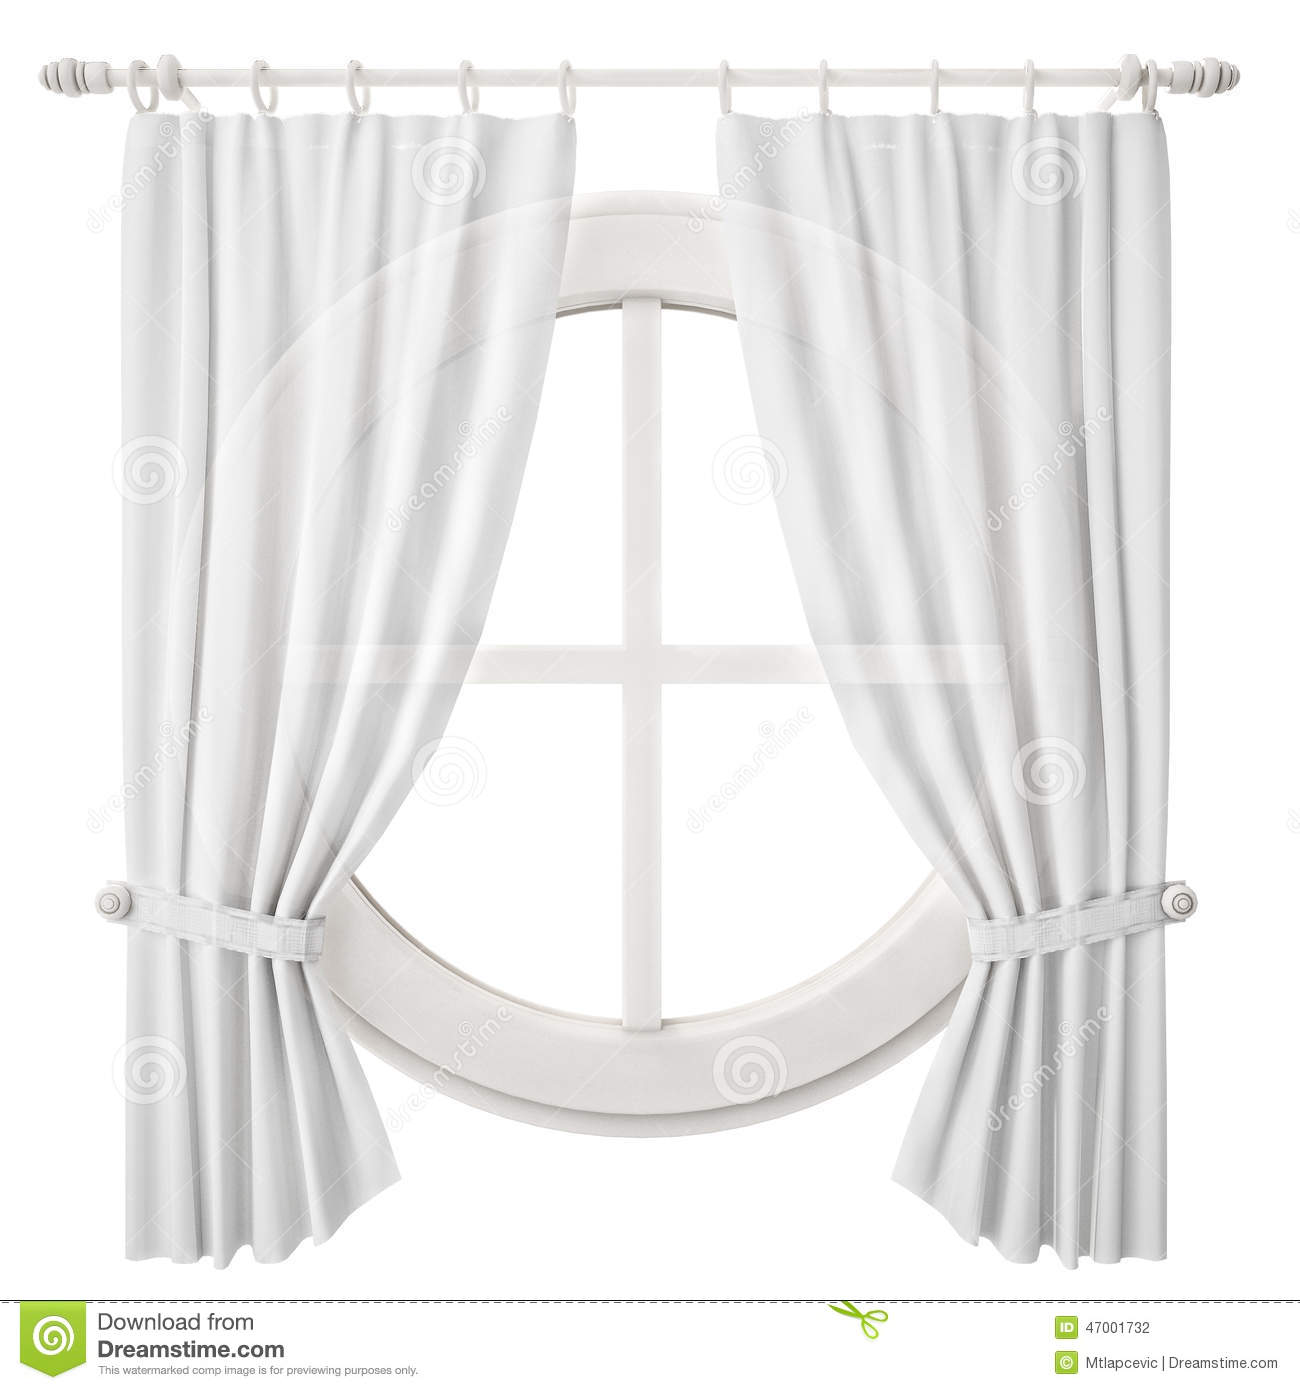 Circle Window Frame With Curtain Isolated On White Background ... for Window With Curtains Illustration  45gtk